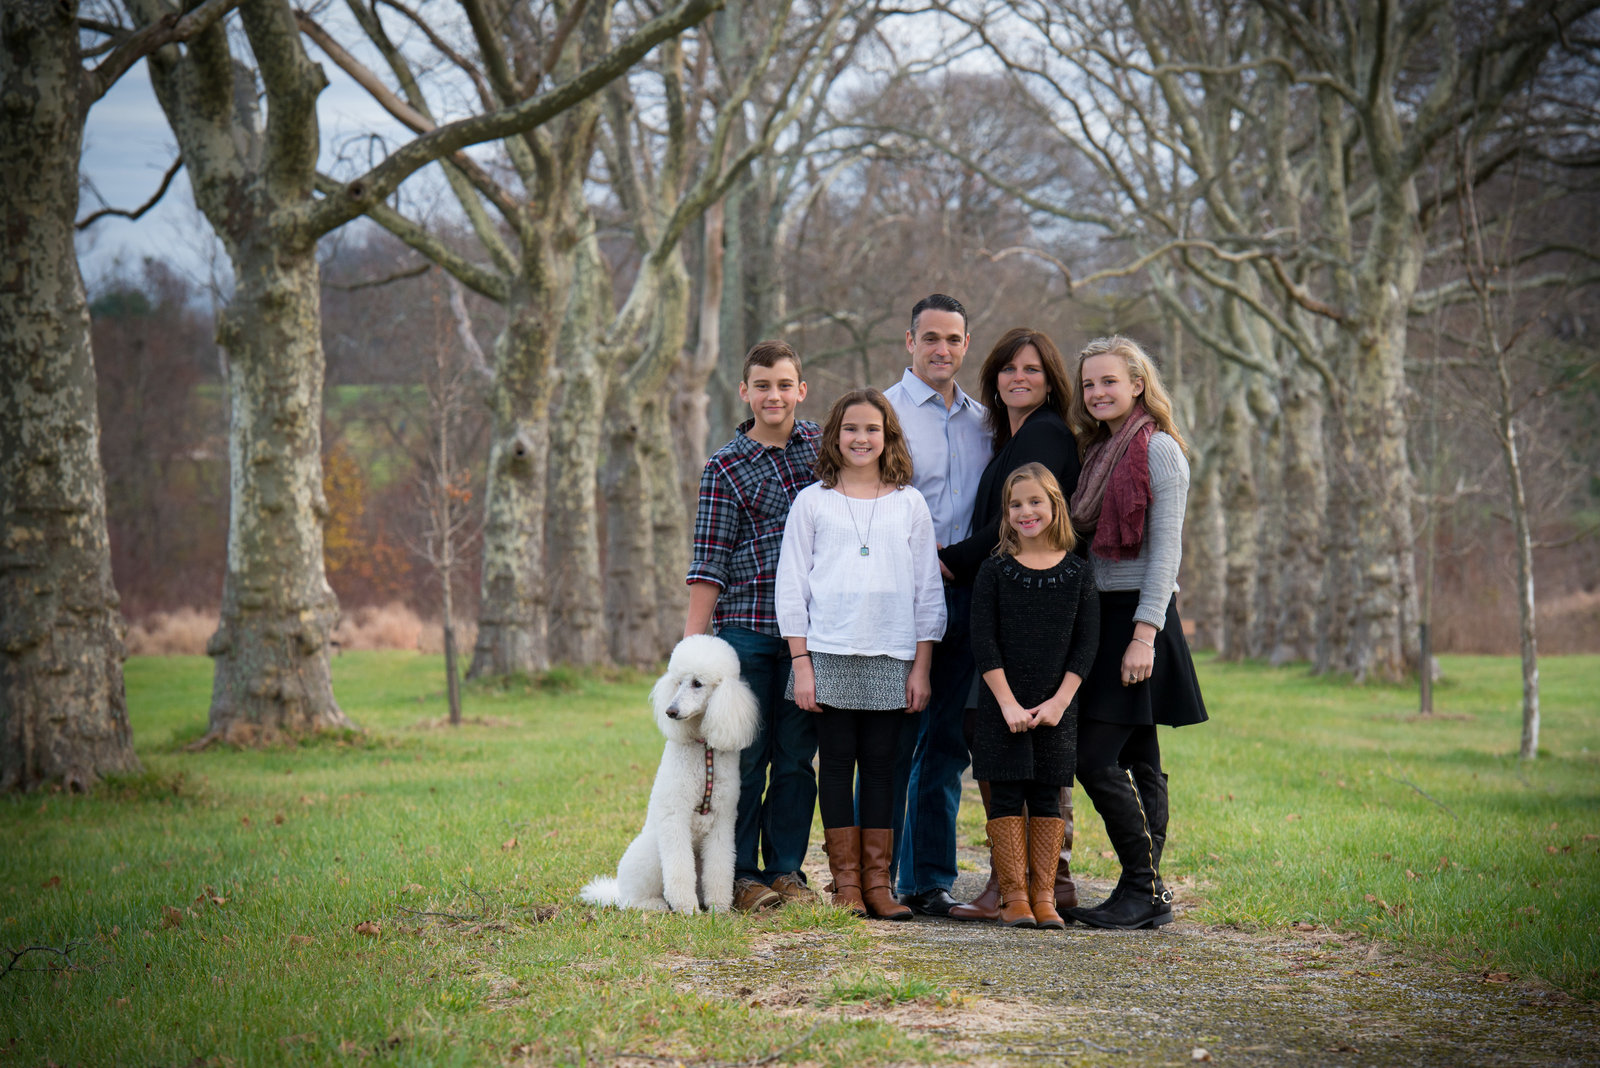 Fall Family portraits, West Chester PA Family Photographer